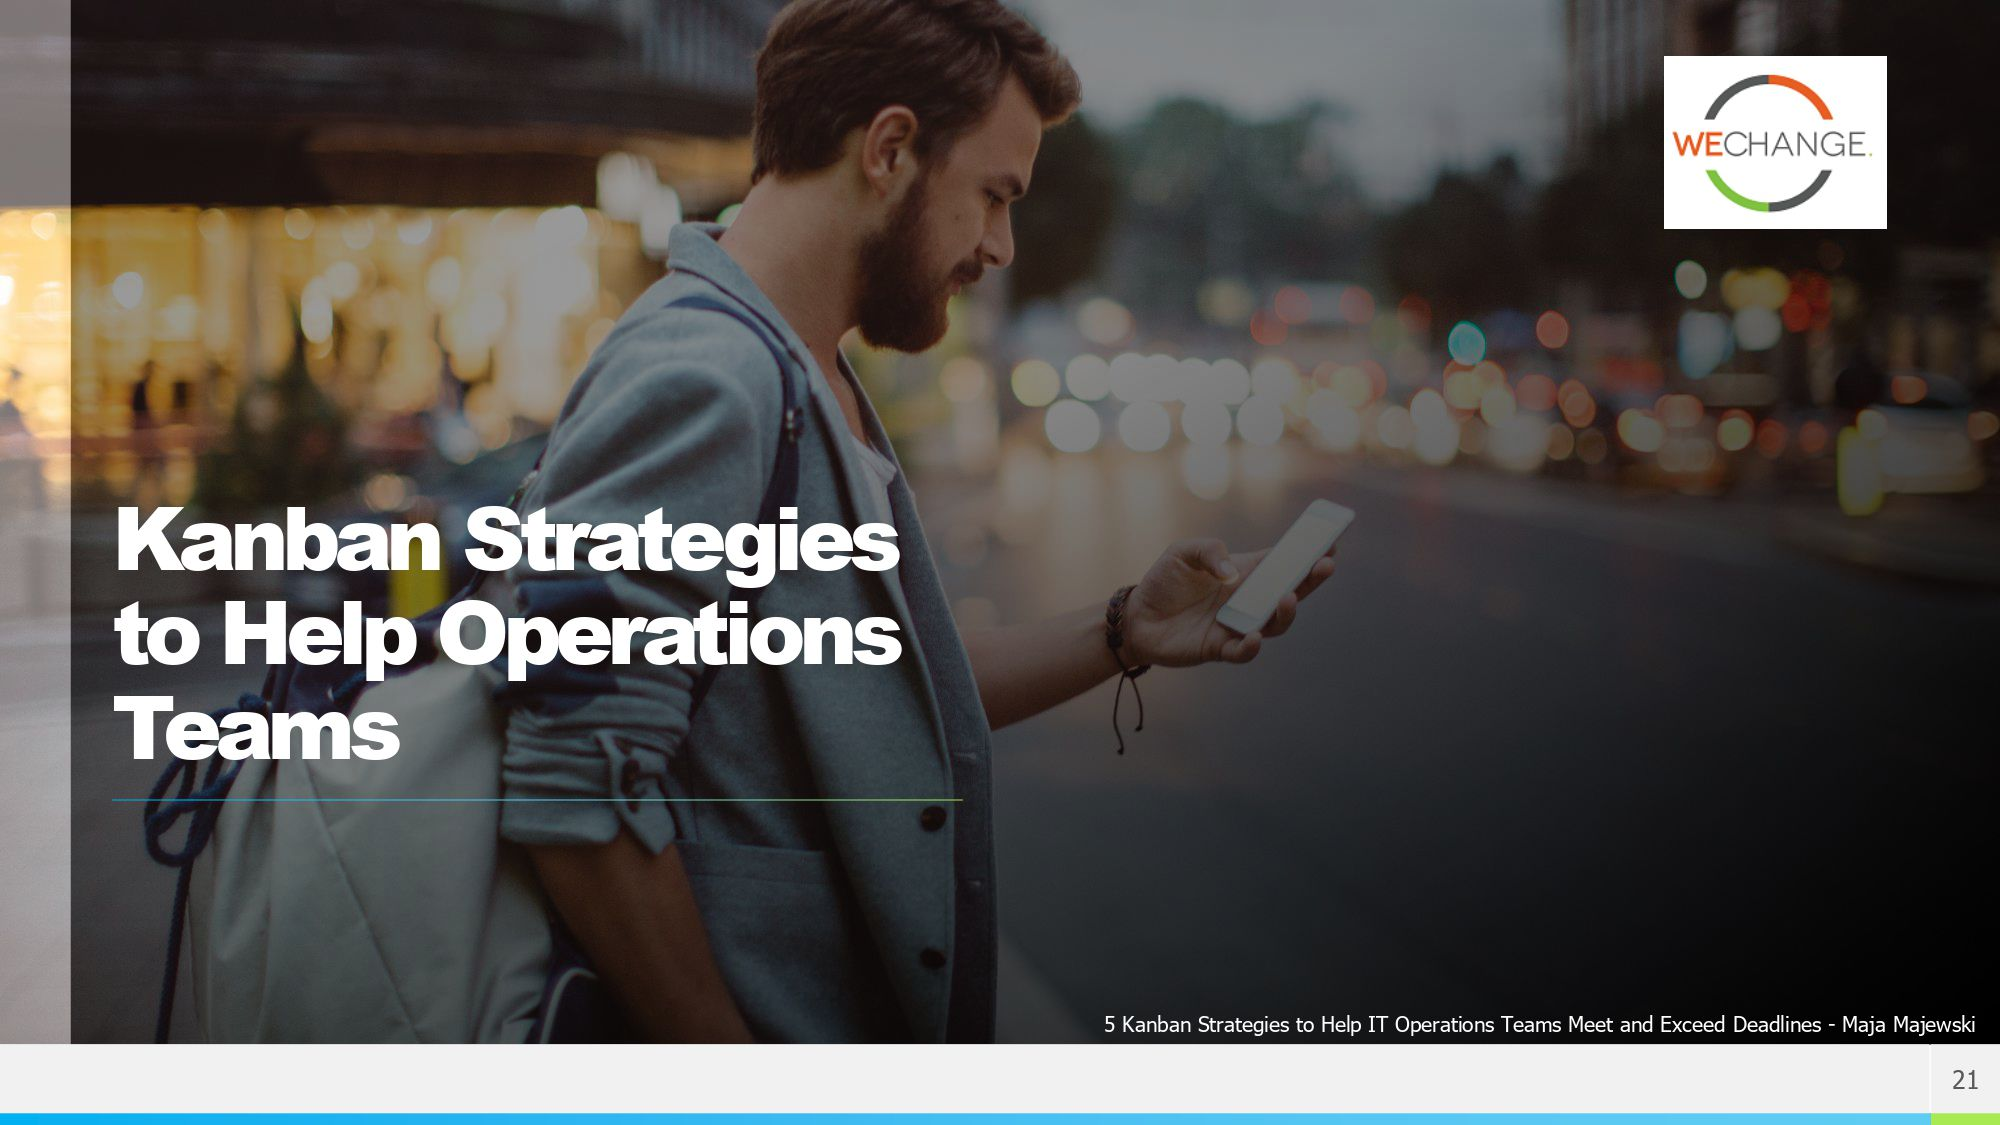 Operations agility page 0014 compressed Being & Doing Agile in Customer oriented care and Operations Organizations